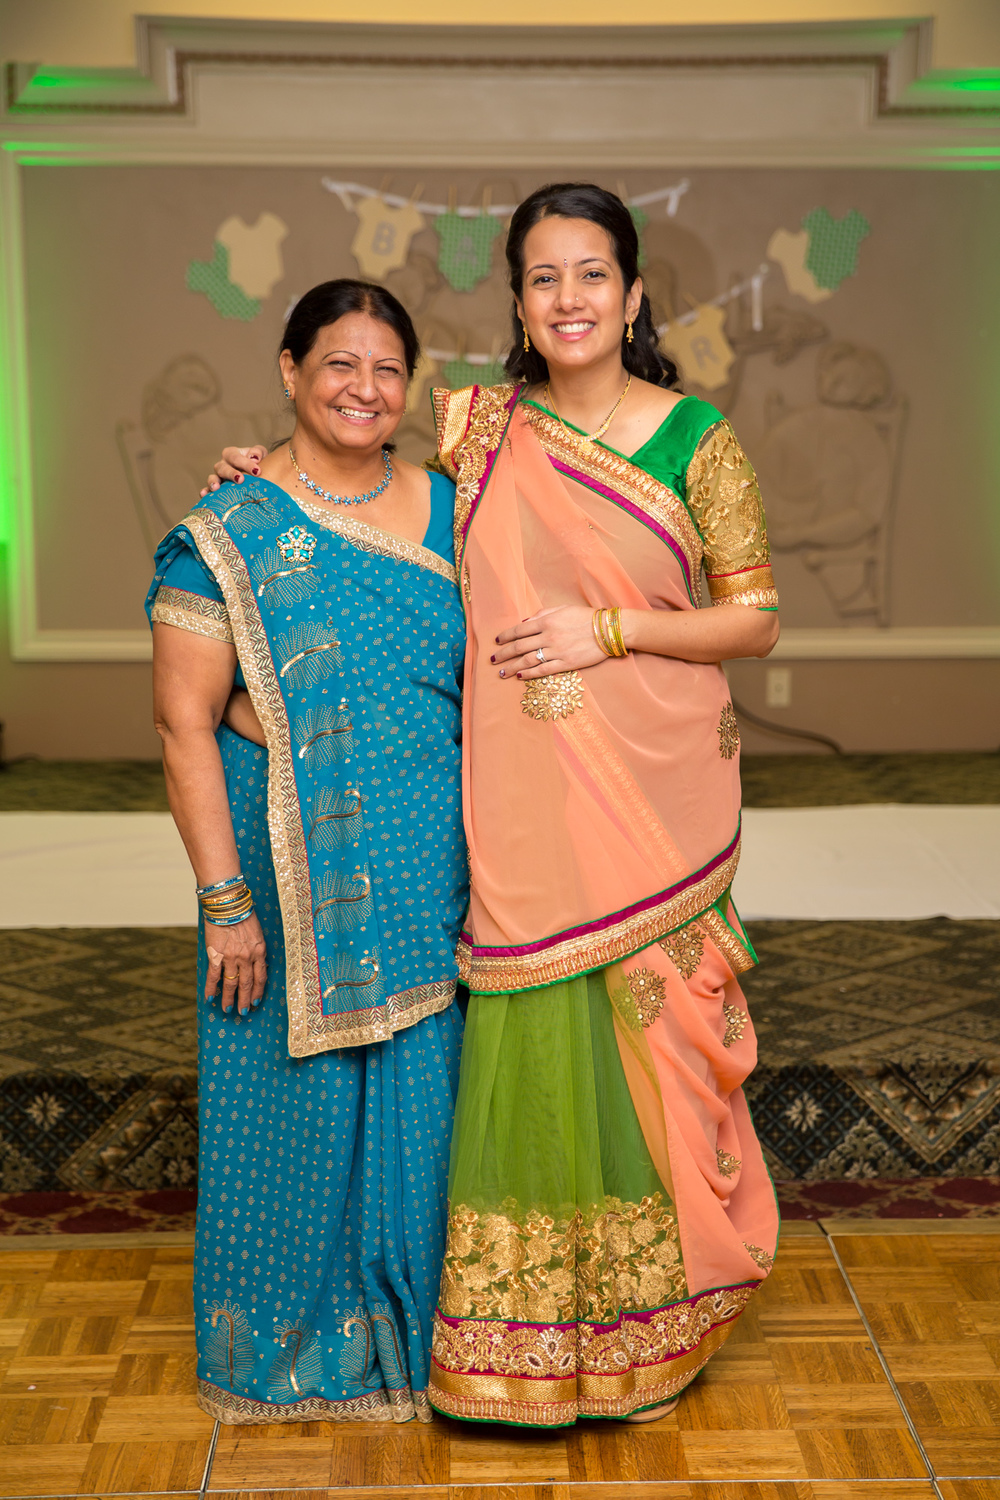 Patel Baby Shower Small-28.jpg